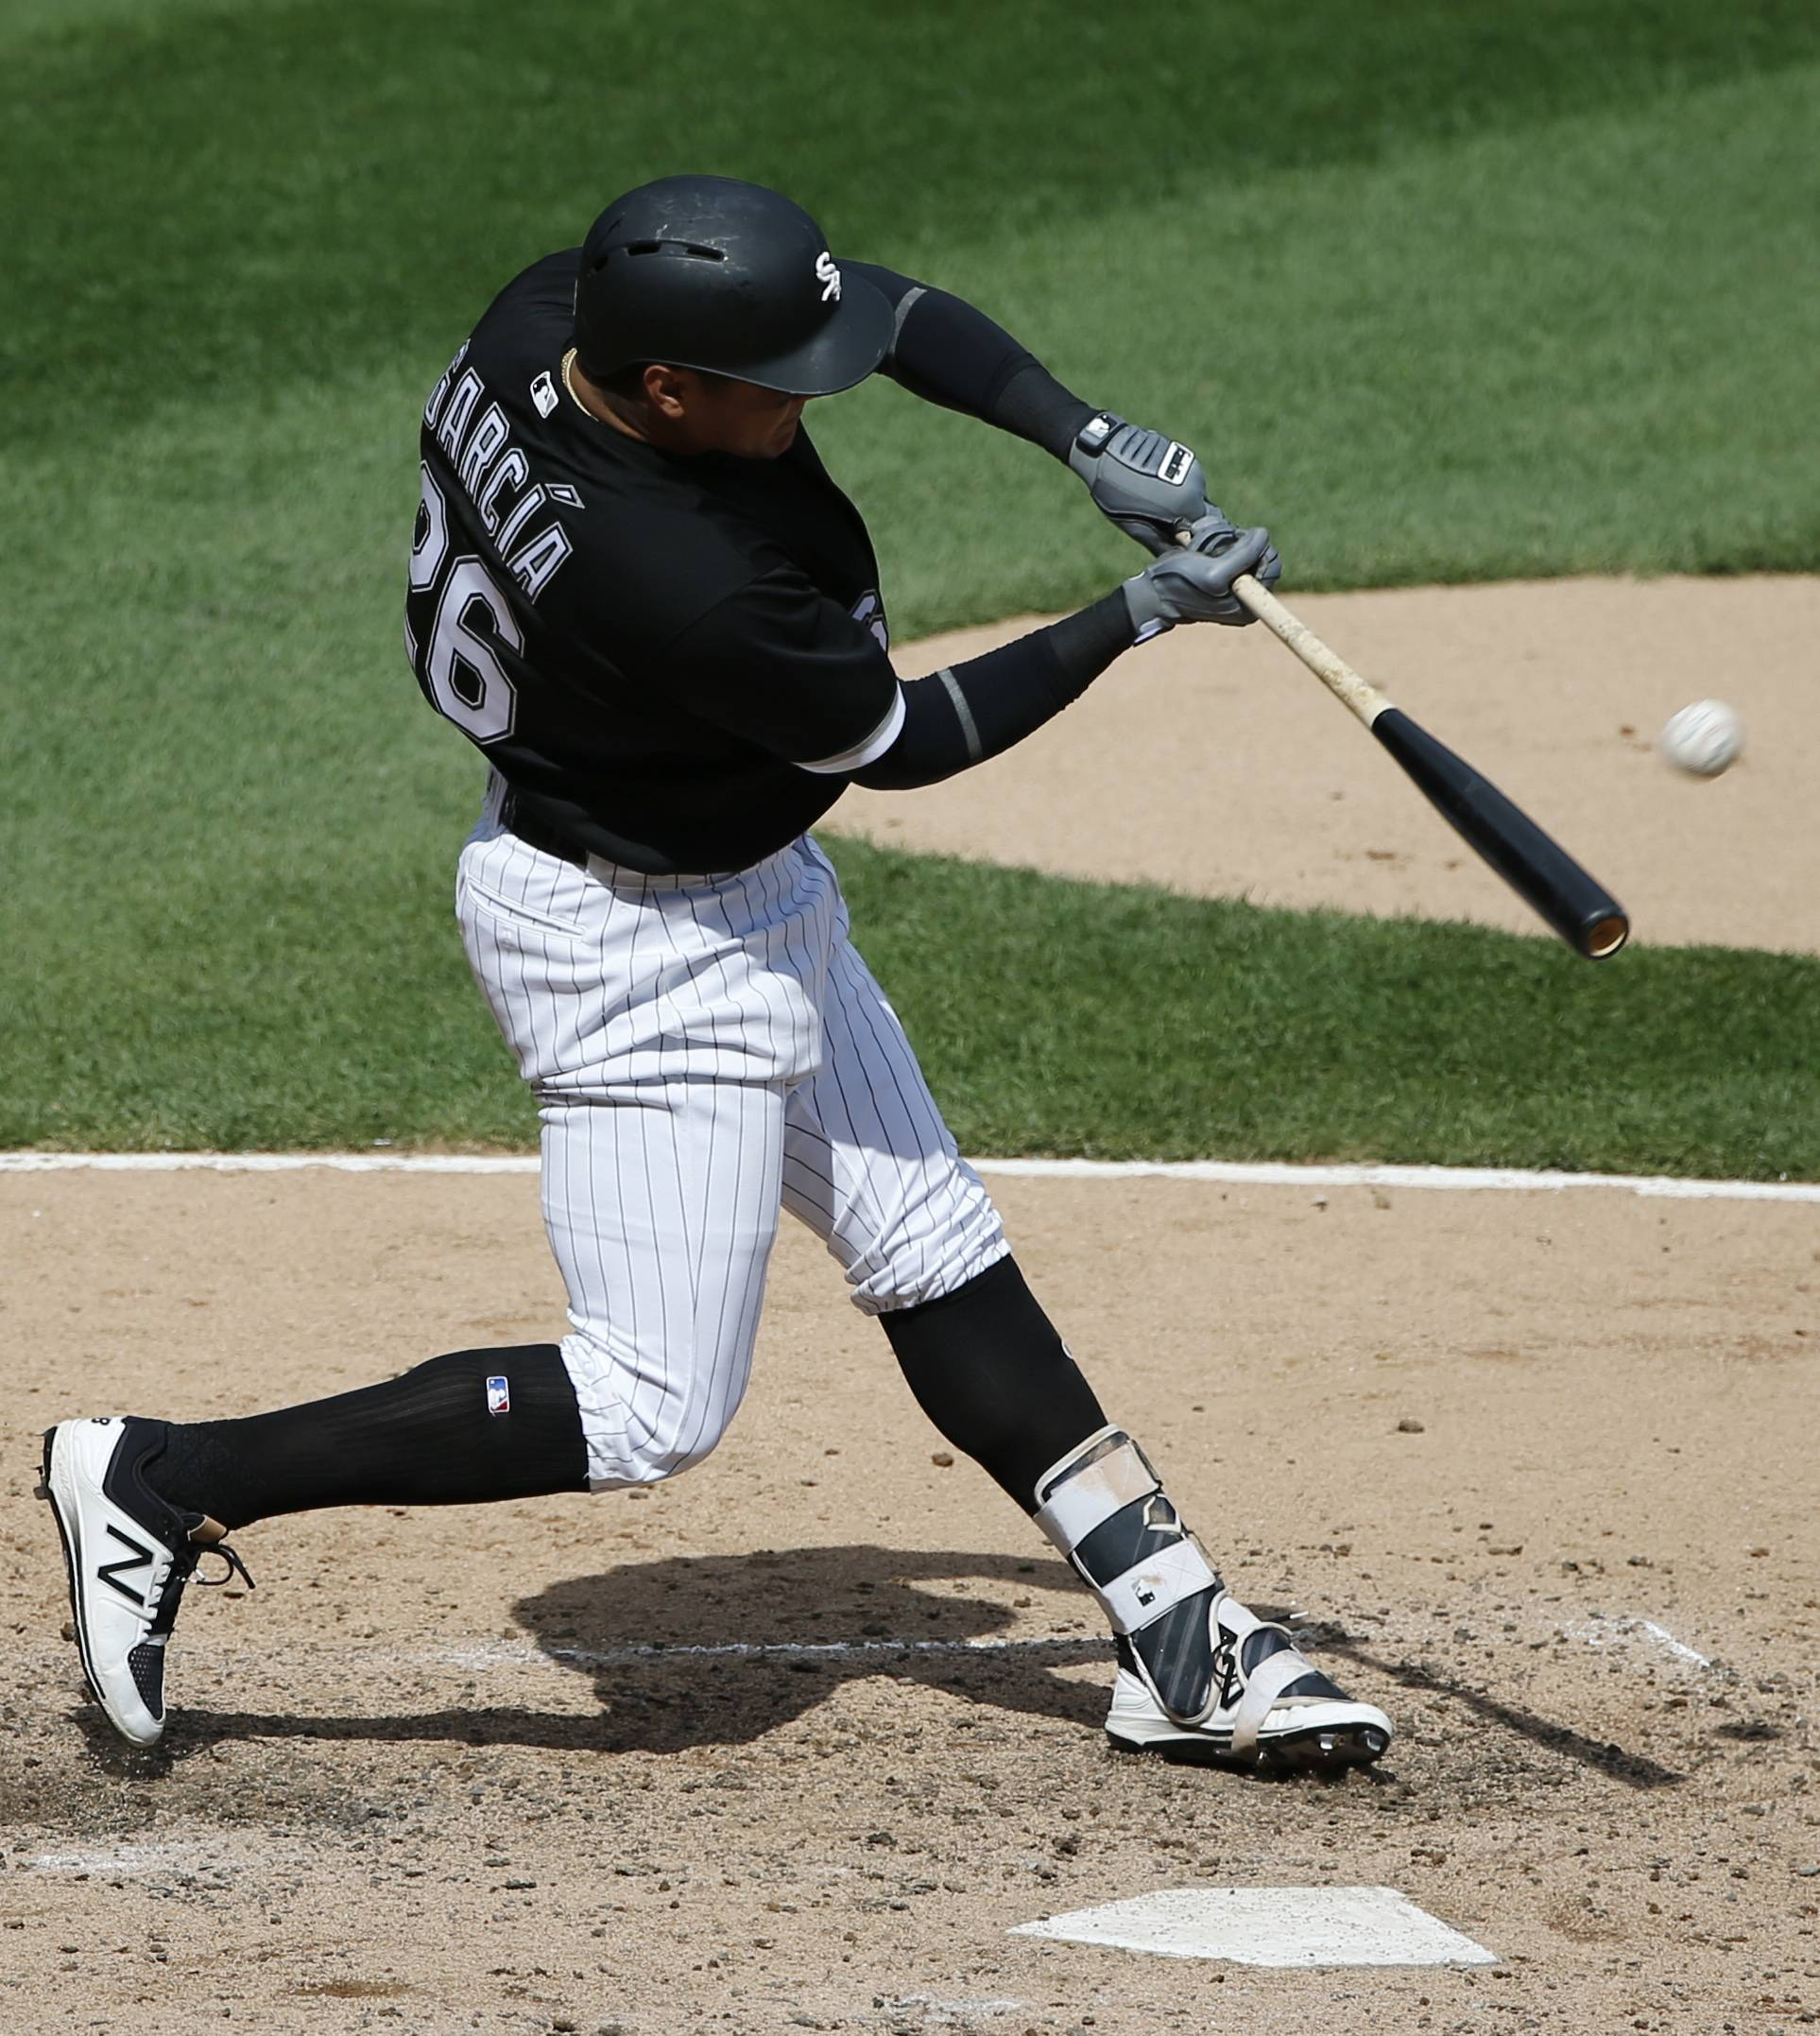 Avisail Garcia hits a two-run home run for the Chicago White Sox during the sixth inning against the Kansas City Royals on Wednesday. Garcia has 15 RBI and 3 home runs to go with his .380 batting average.